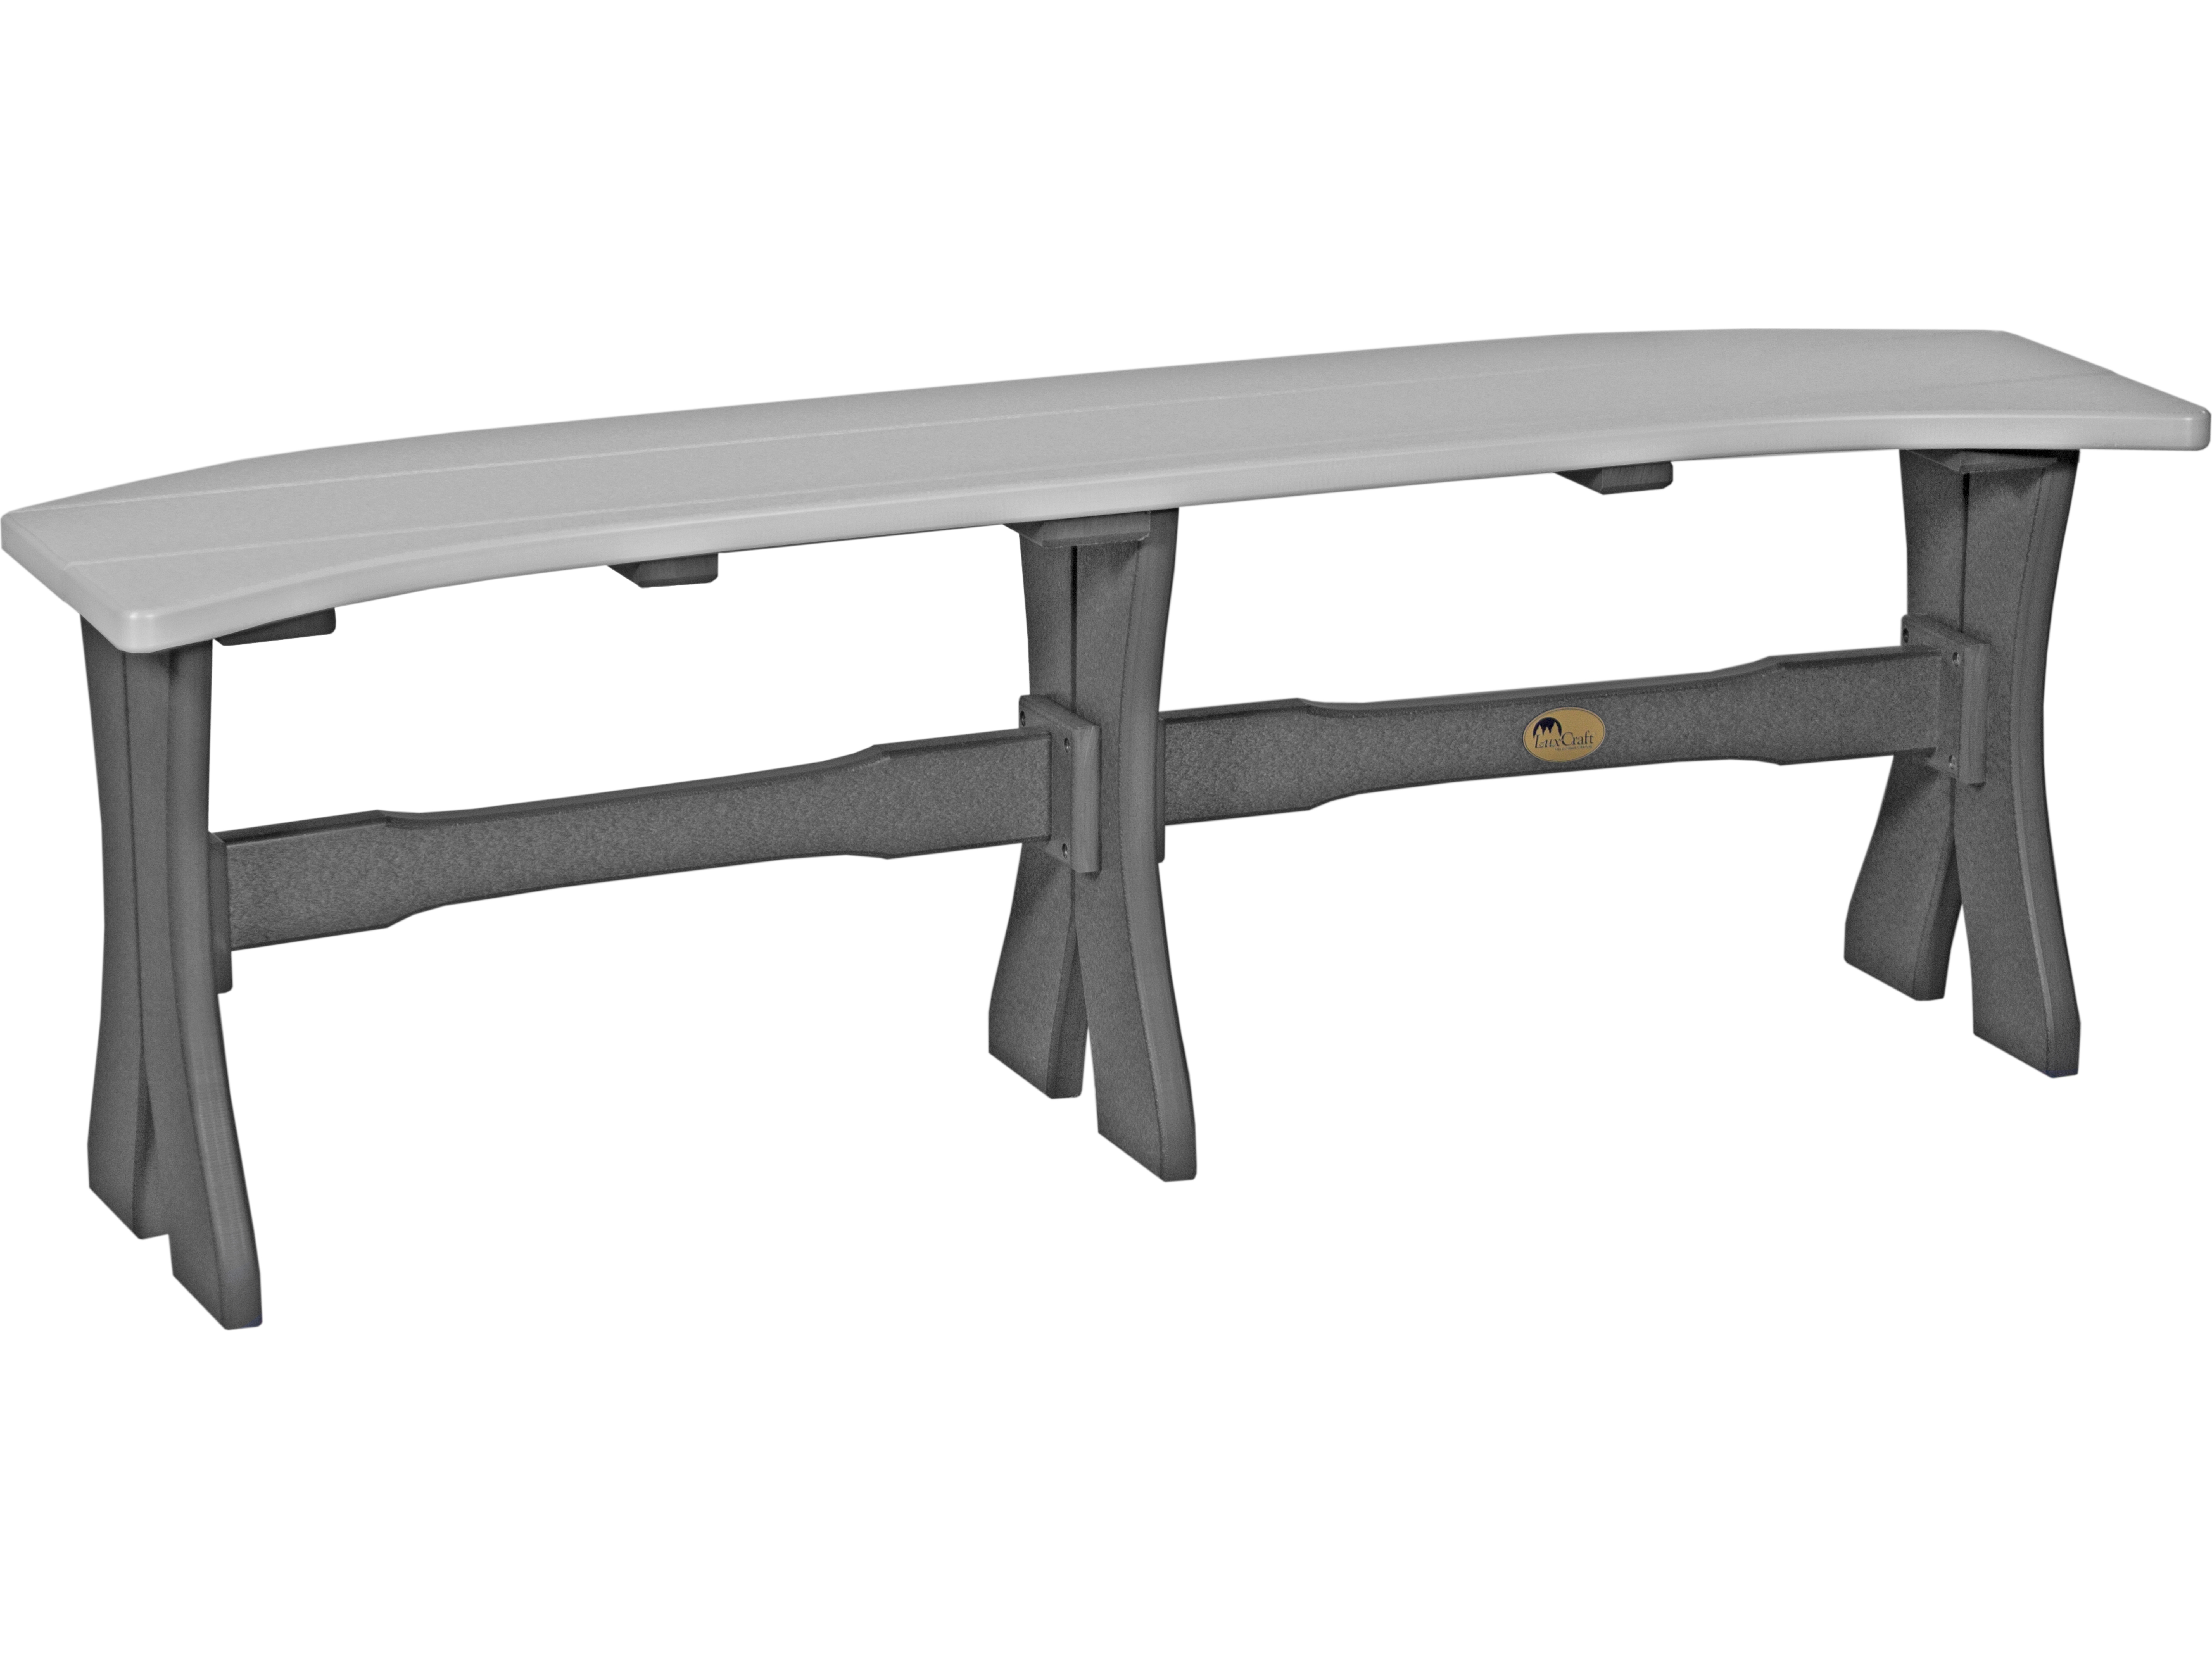 Luxcraft Recycled Plastic 52 Table Bench P52tb Dining